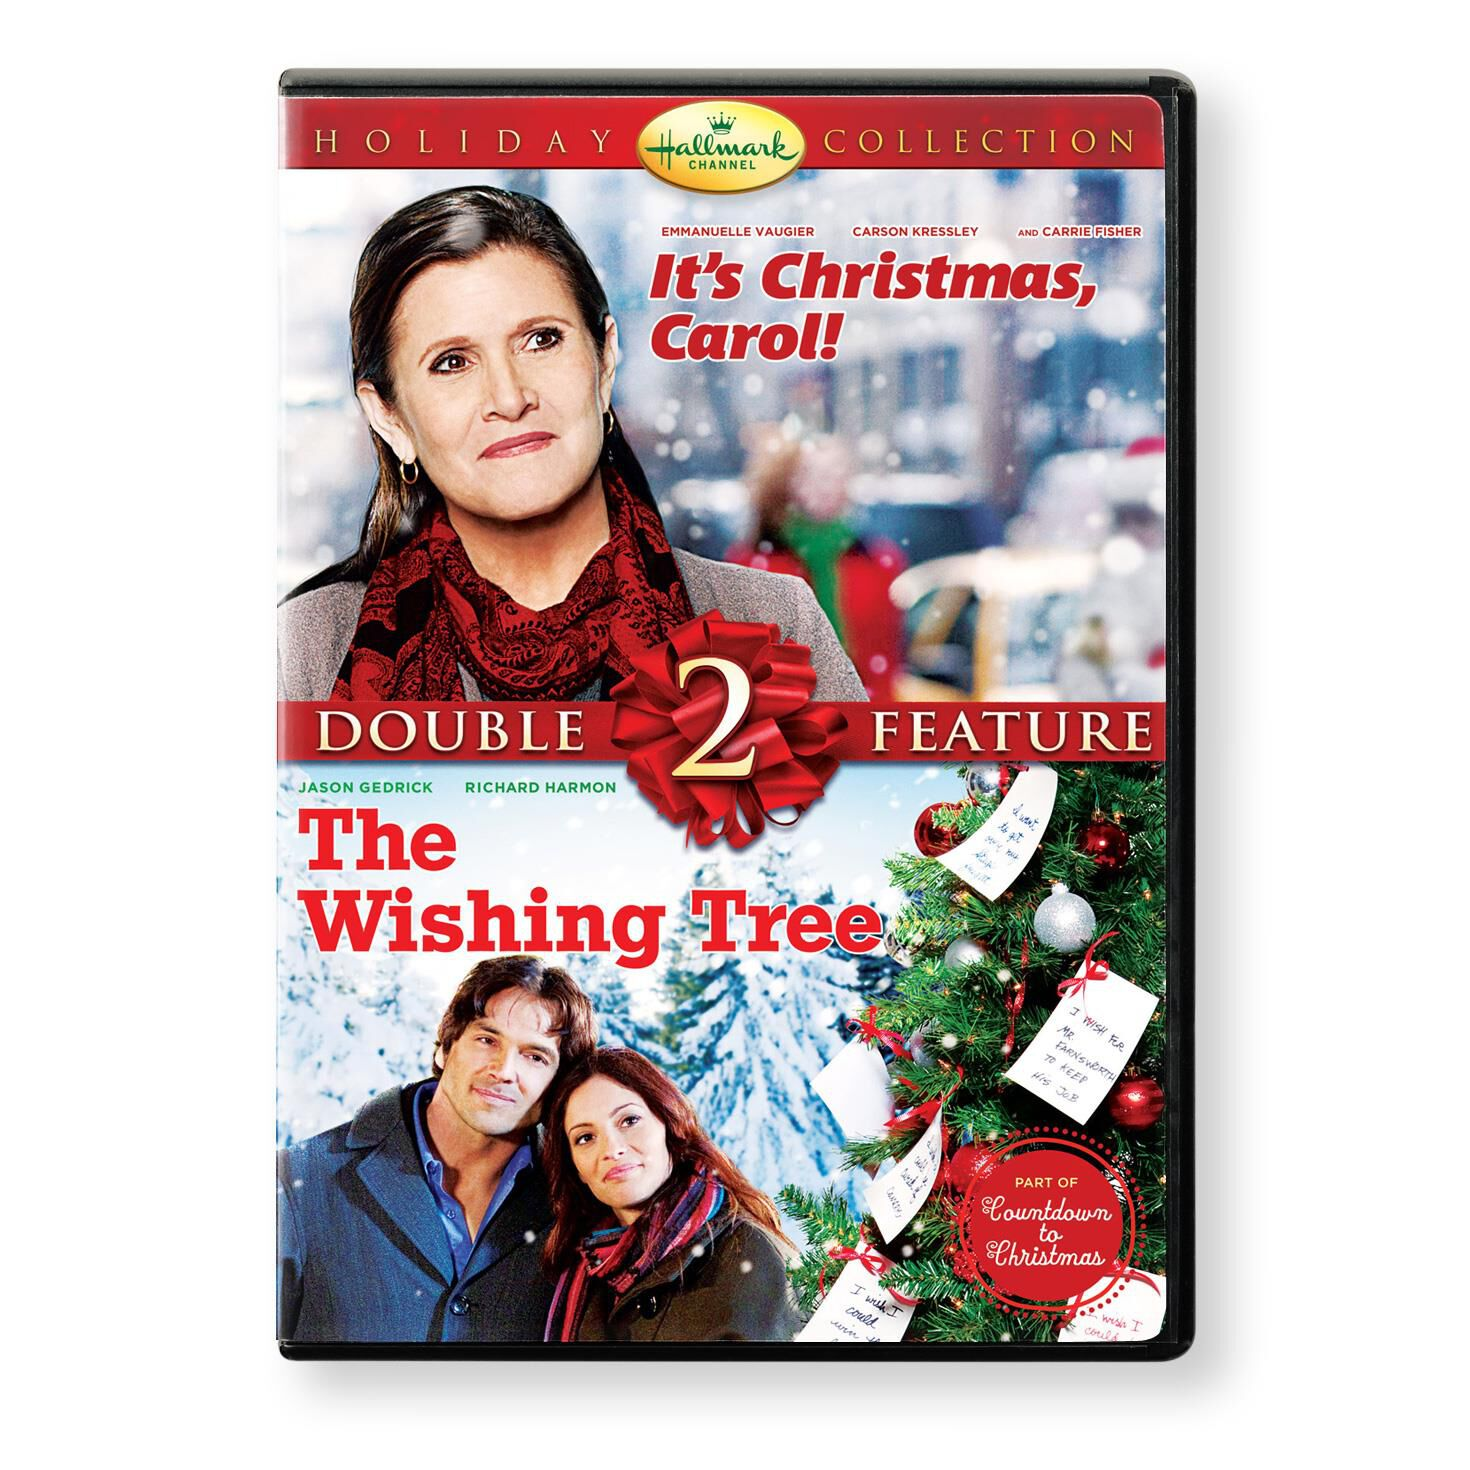 its christmas carol and the wishing tree hallmark channel dvd set hallmark channel hallmark